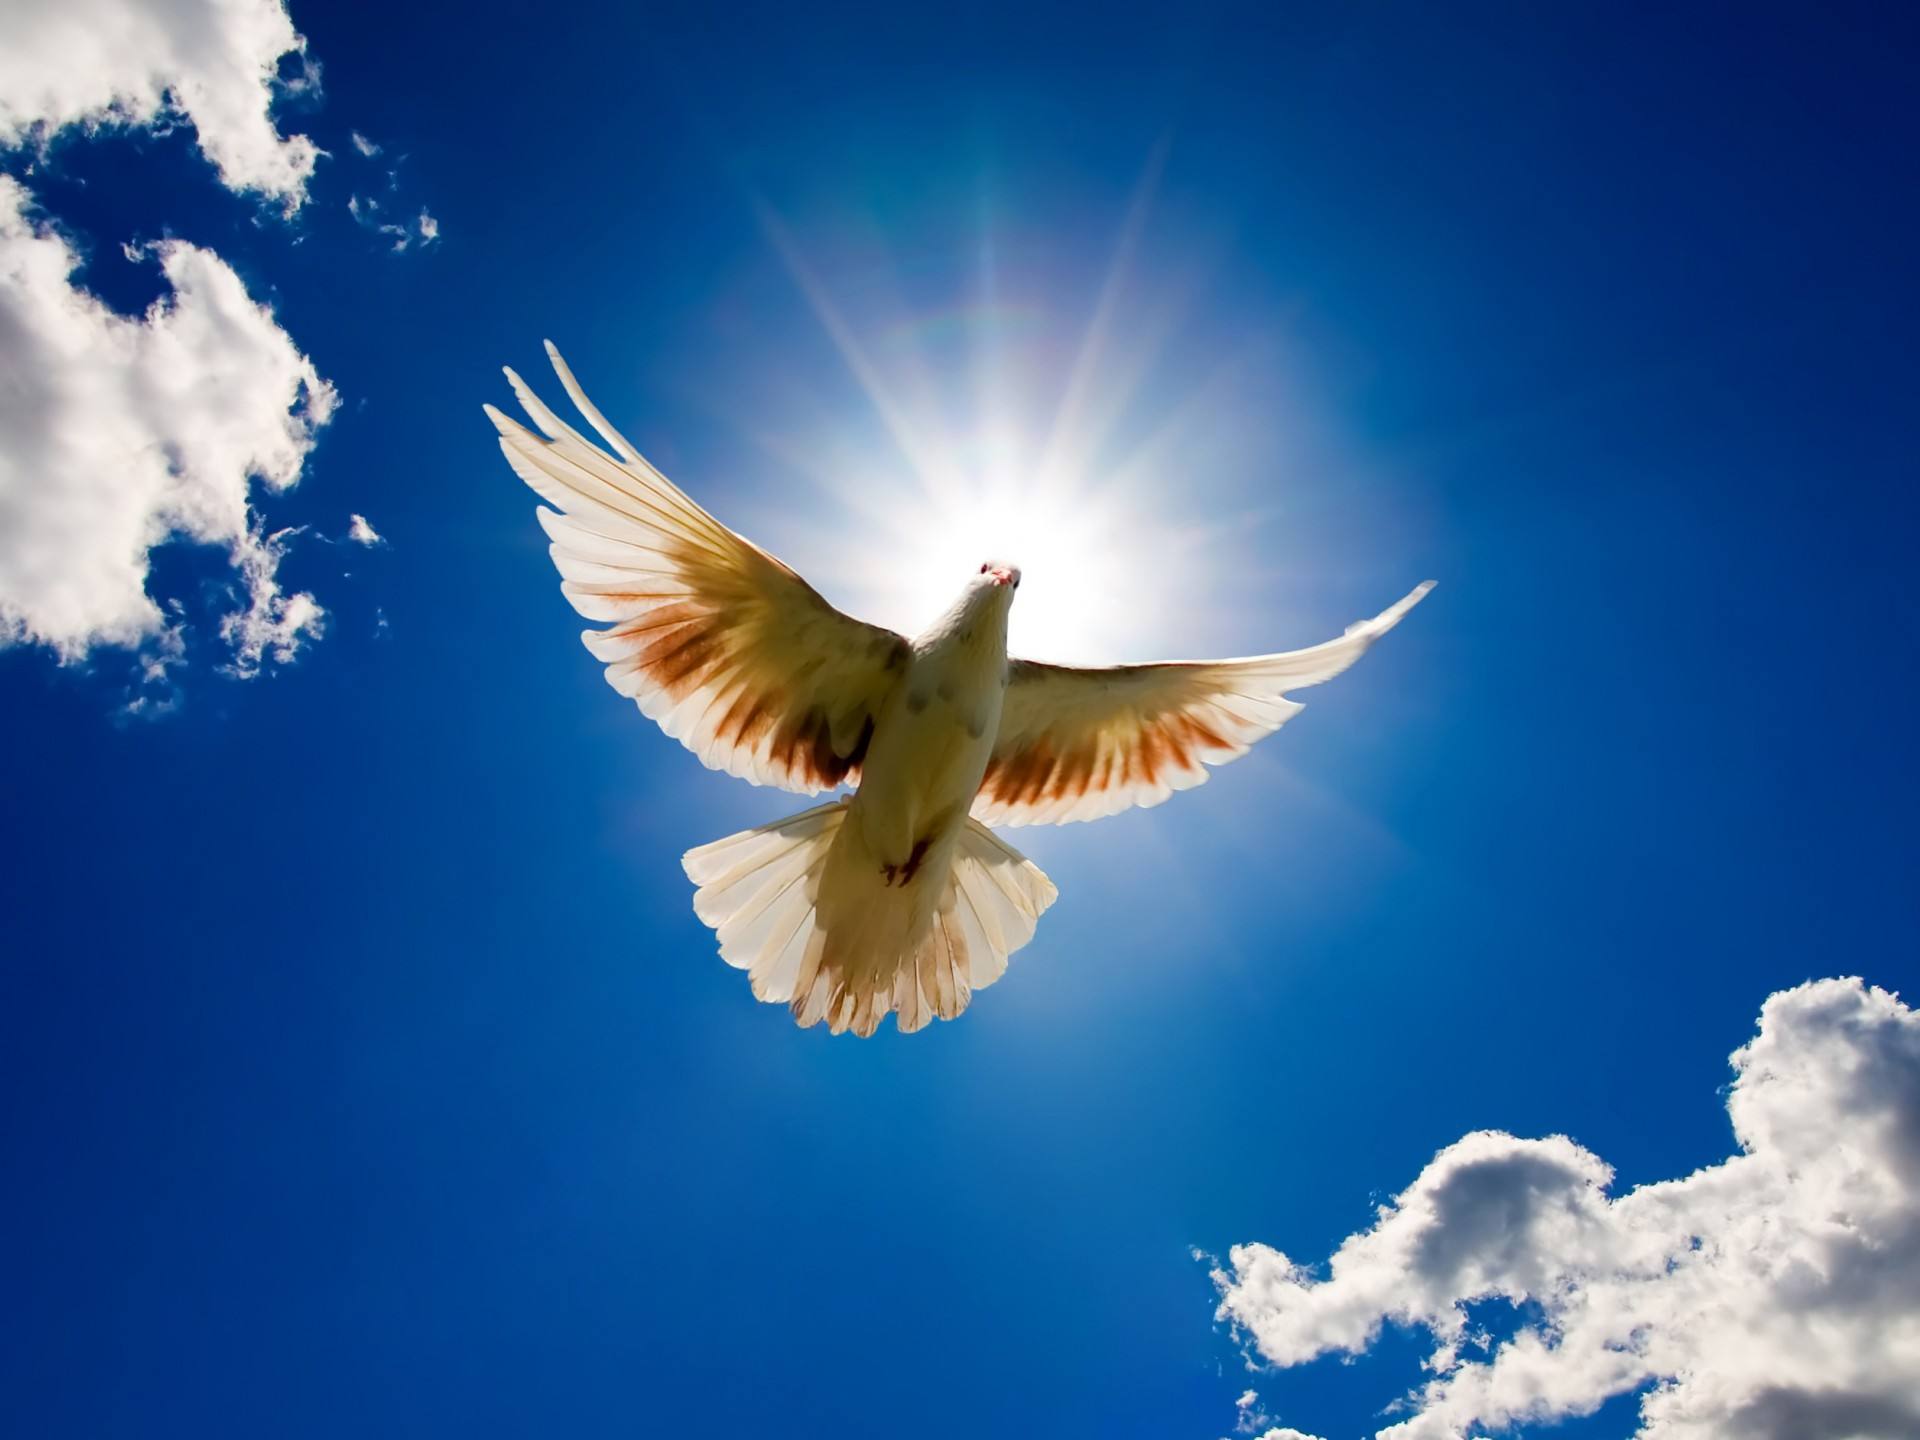 Scenery Wallpaper   Includes a Dove Bird from the Sky Makes One 1920x1440